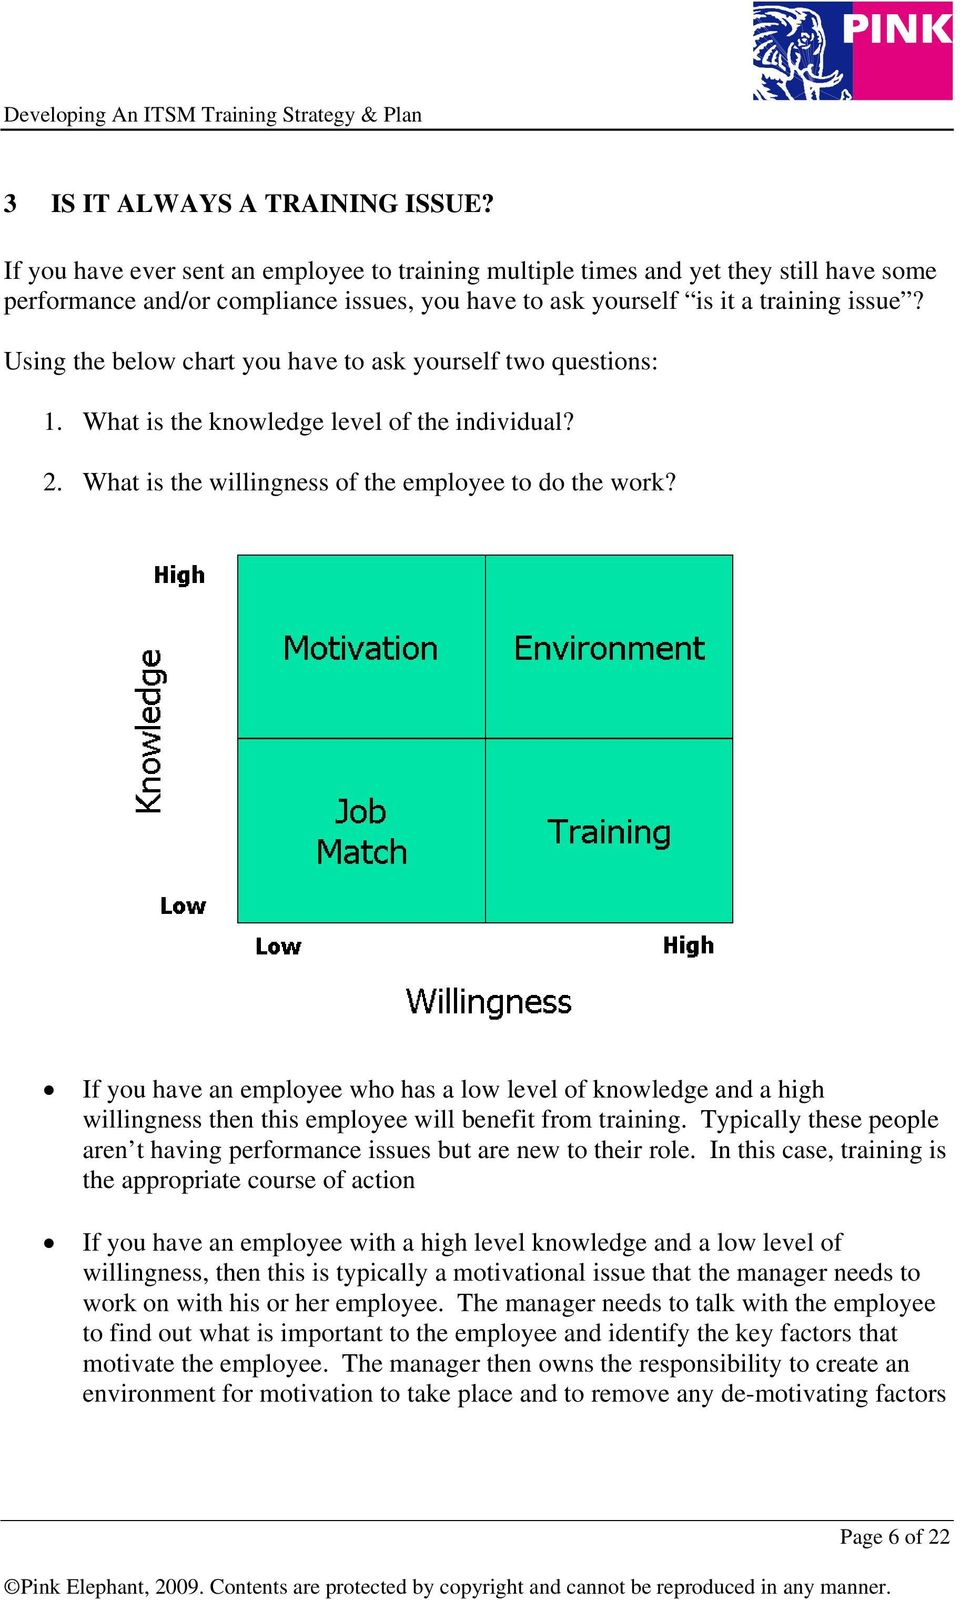 Using the below chart you have to ask yourself two questions: 1. What is the knowledge level of the individual? 2. What is the willingness of the employee to do the work?